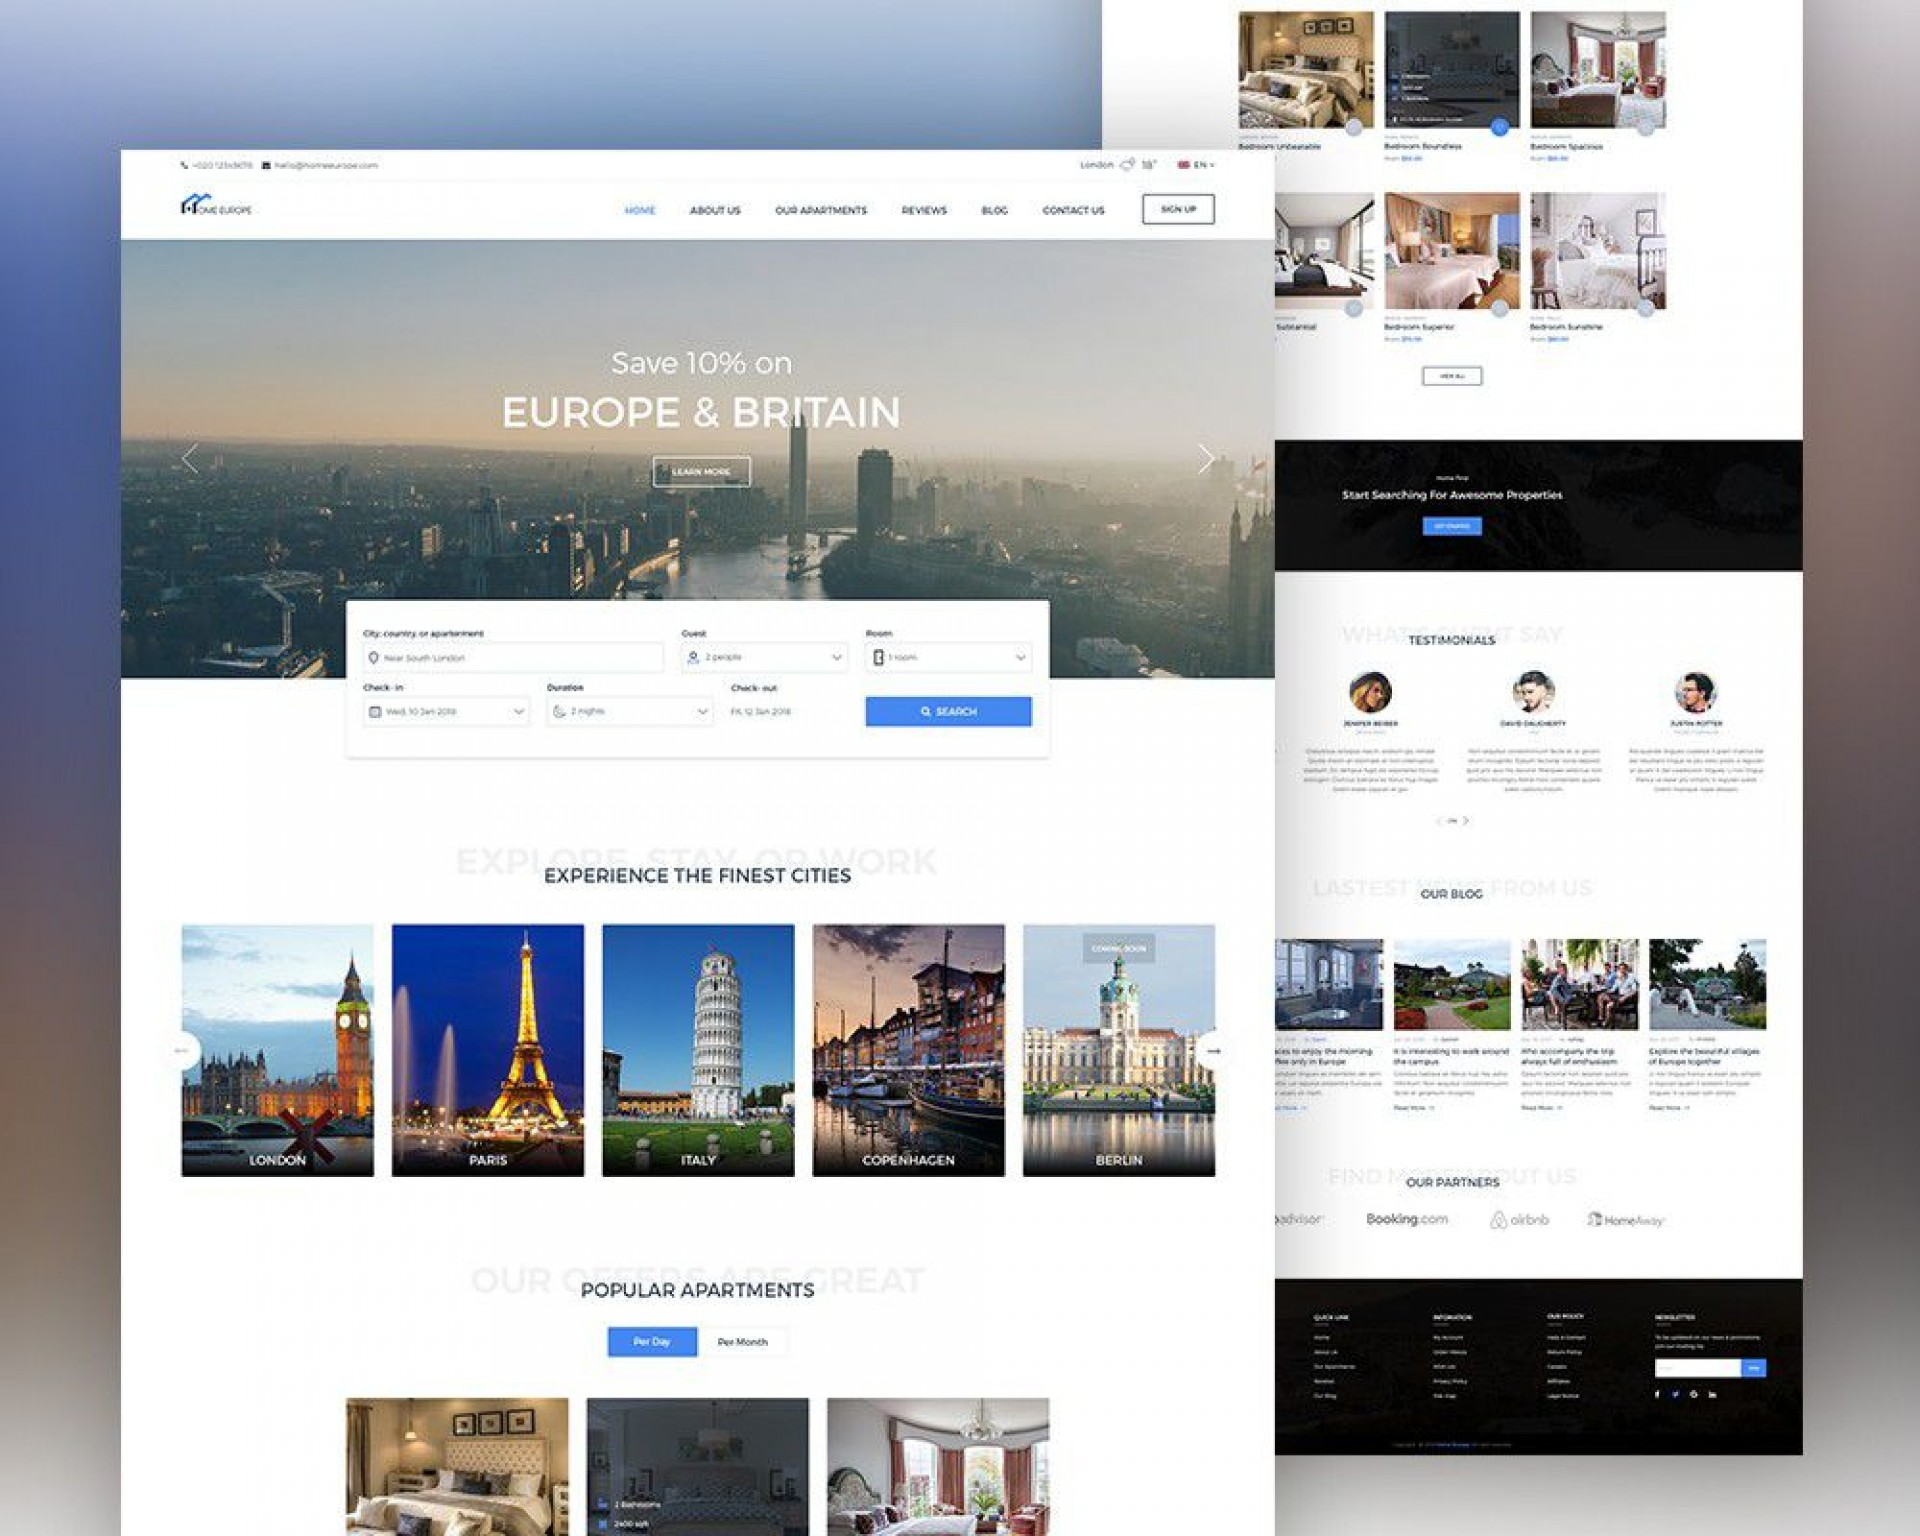 009 Amazing Real Estate Website Template Picture  Templates Free Download Bootstrap 4 Listing Wordpres1920